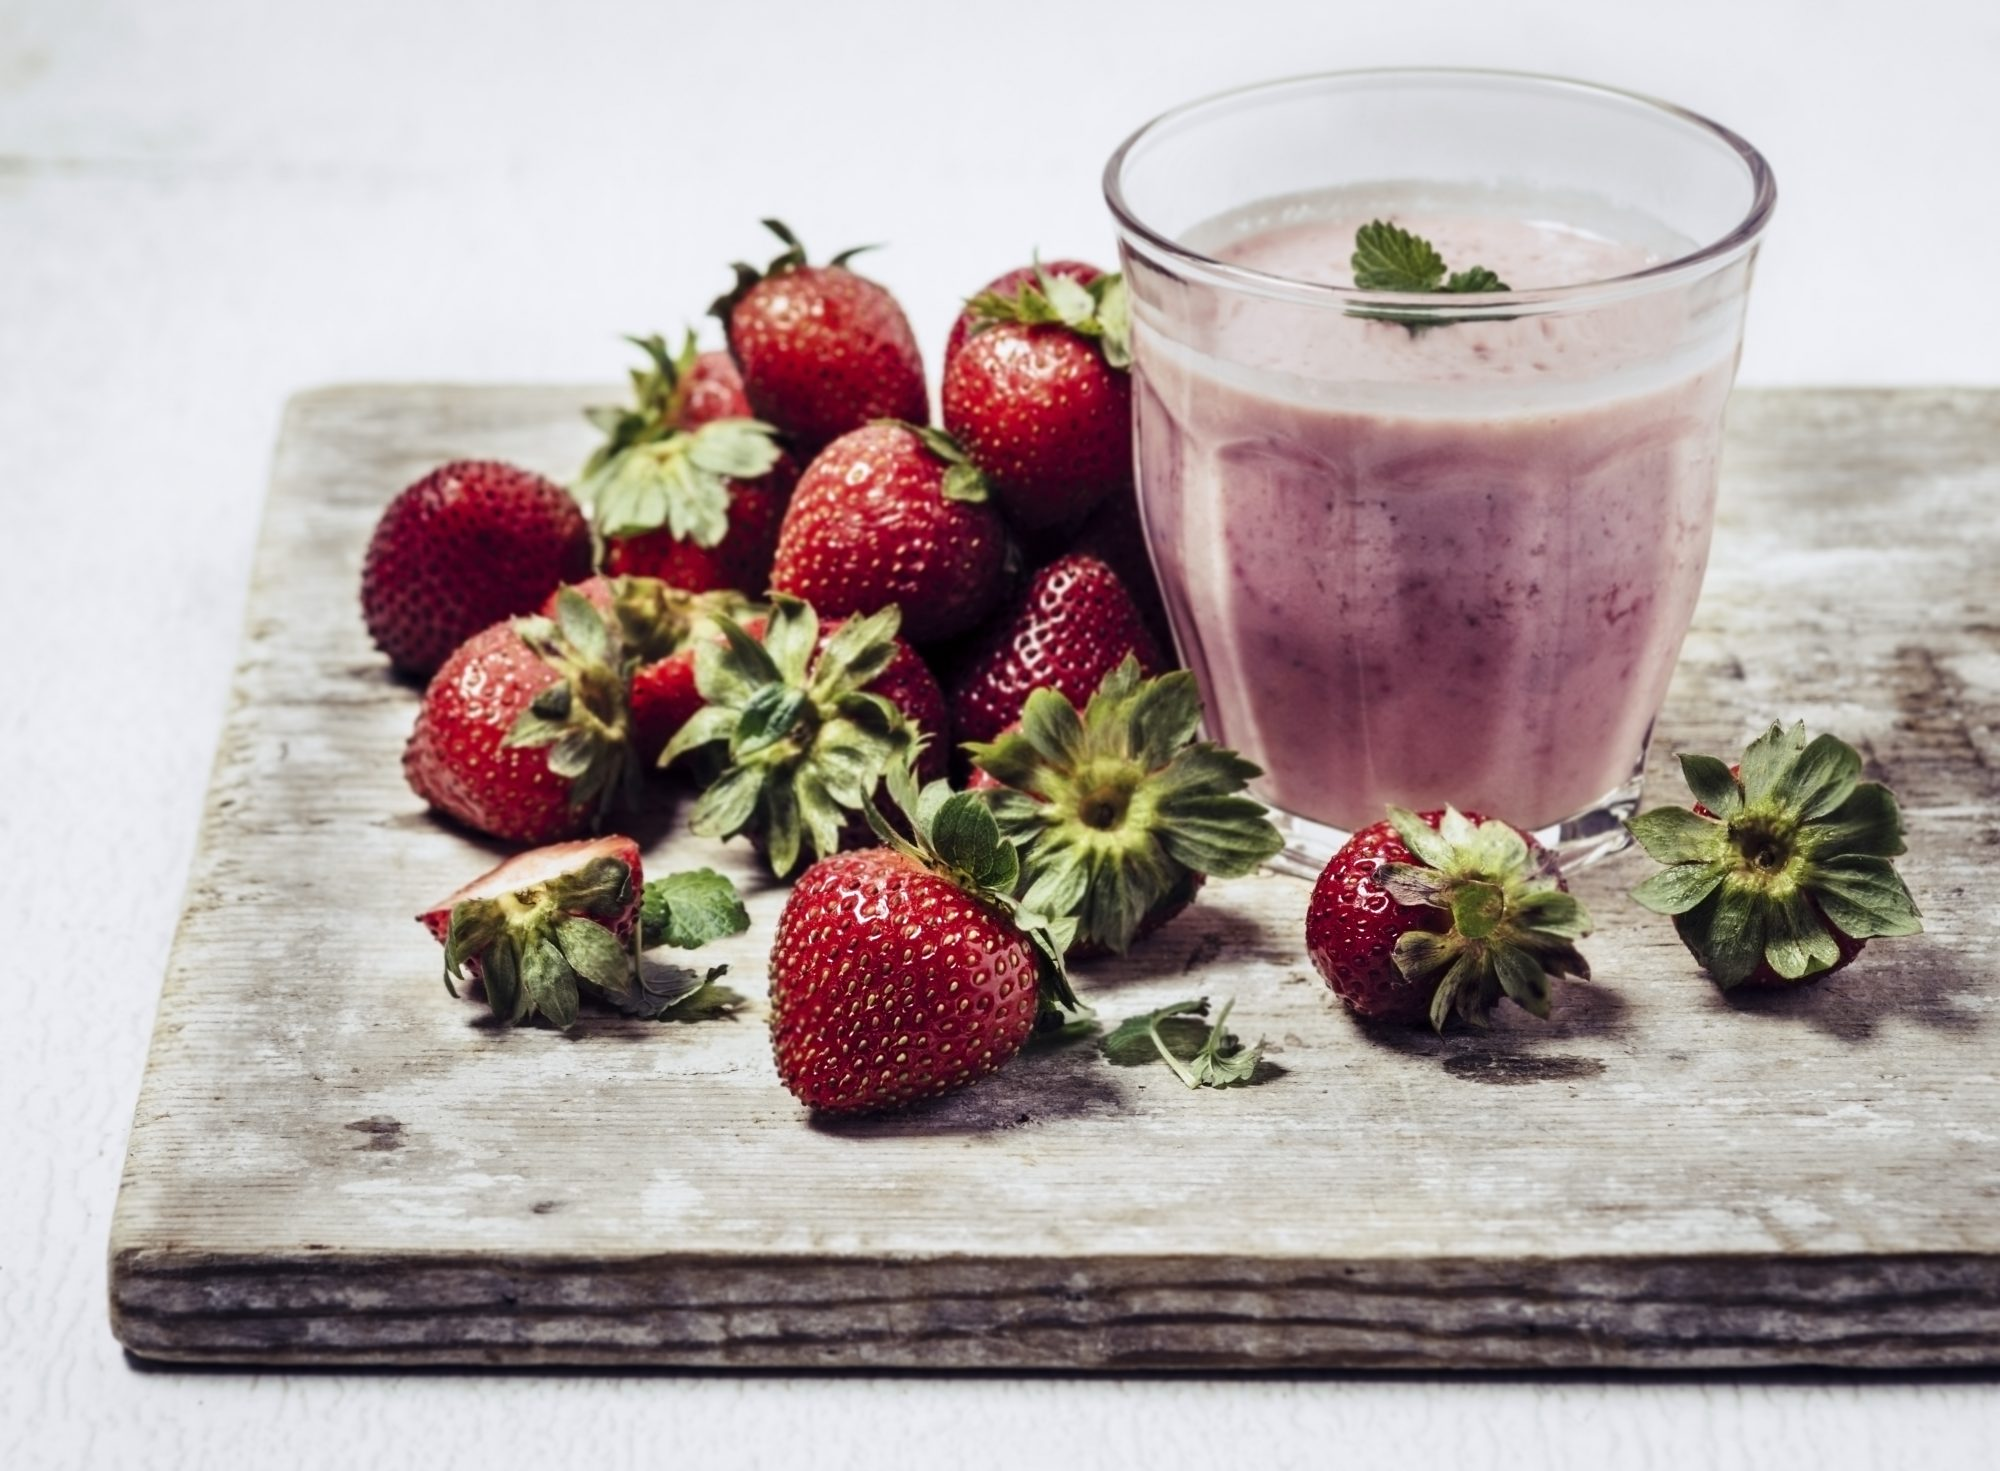 vitamin C smoothie for immunity support: strawberries